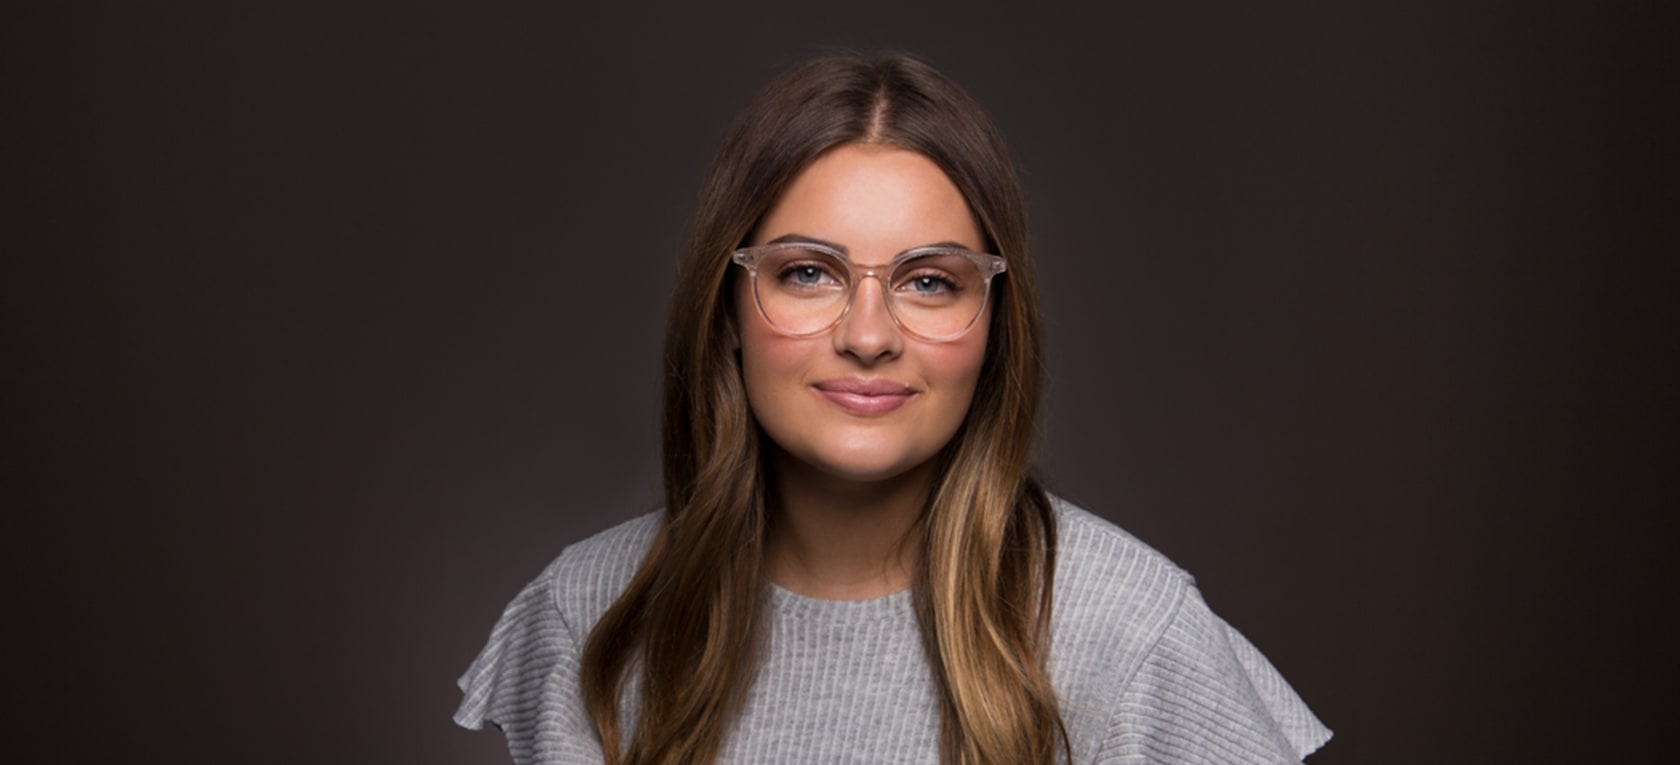 Image of model wearing frame